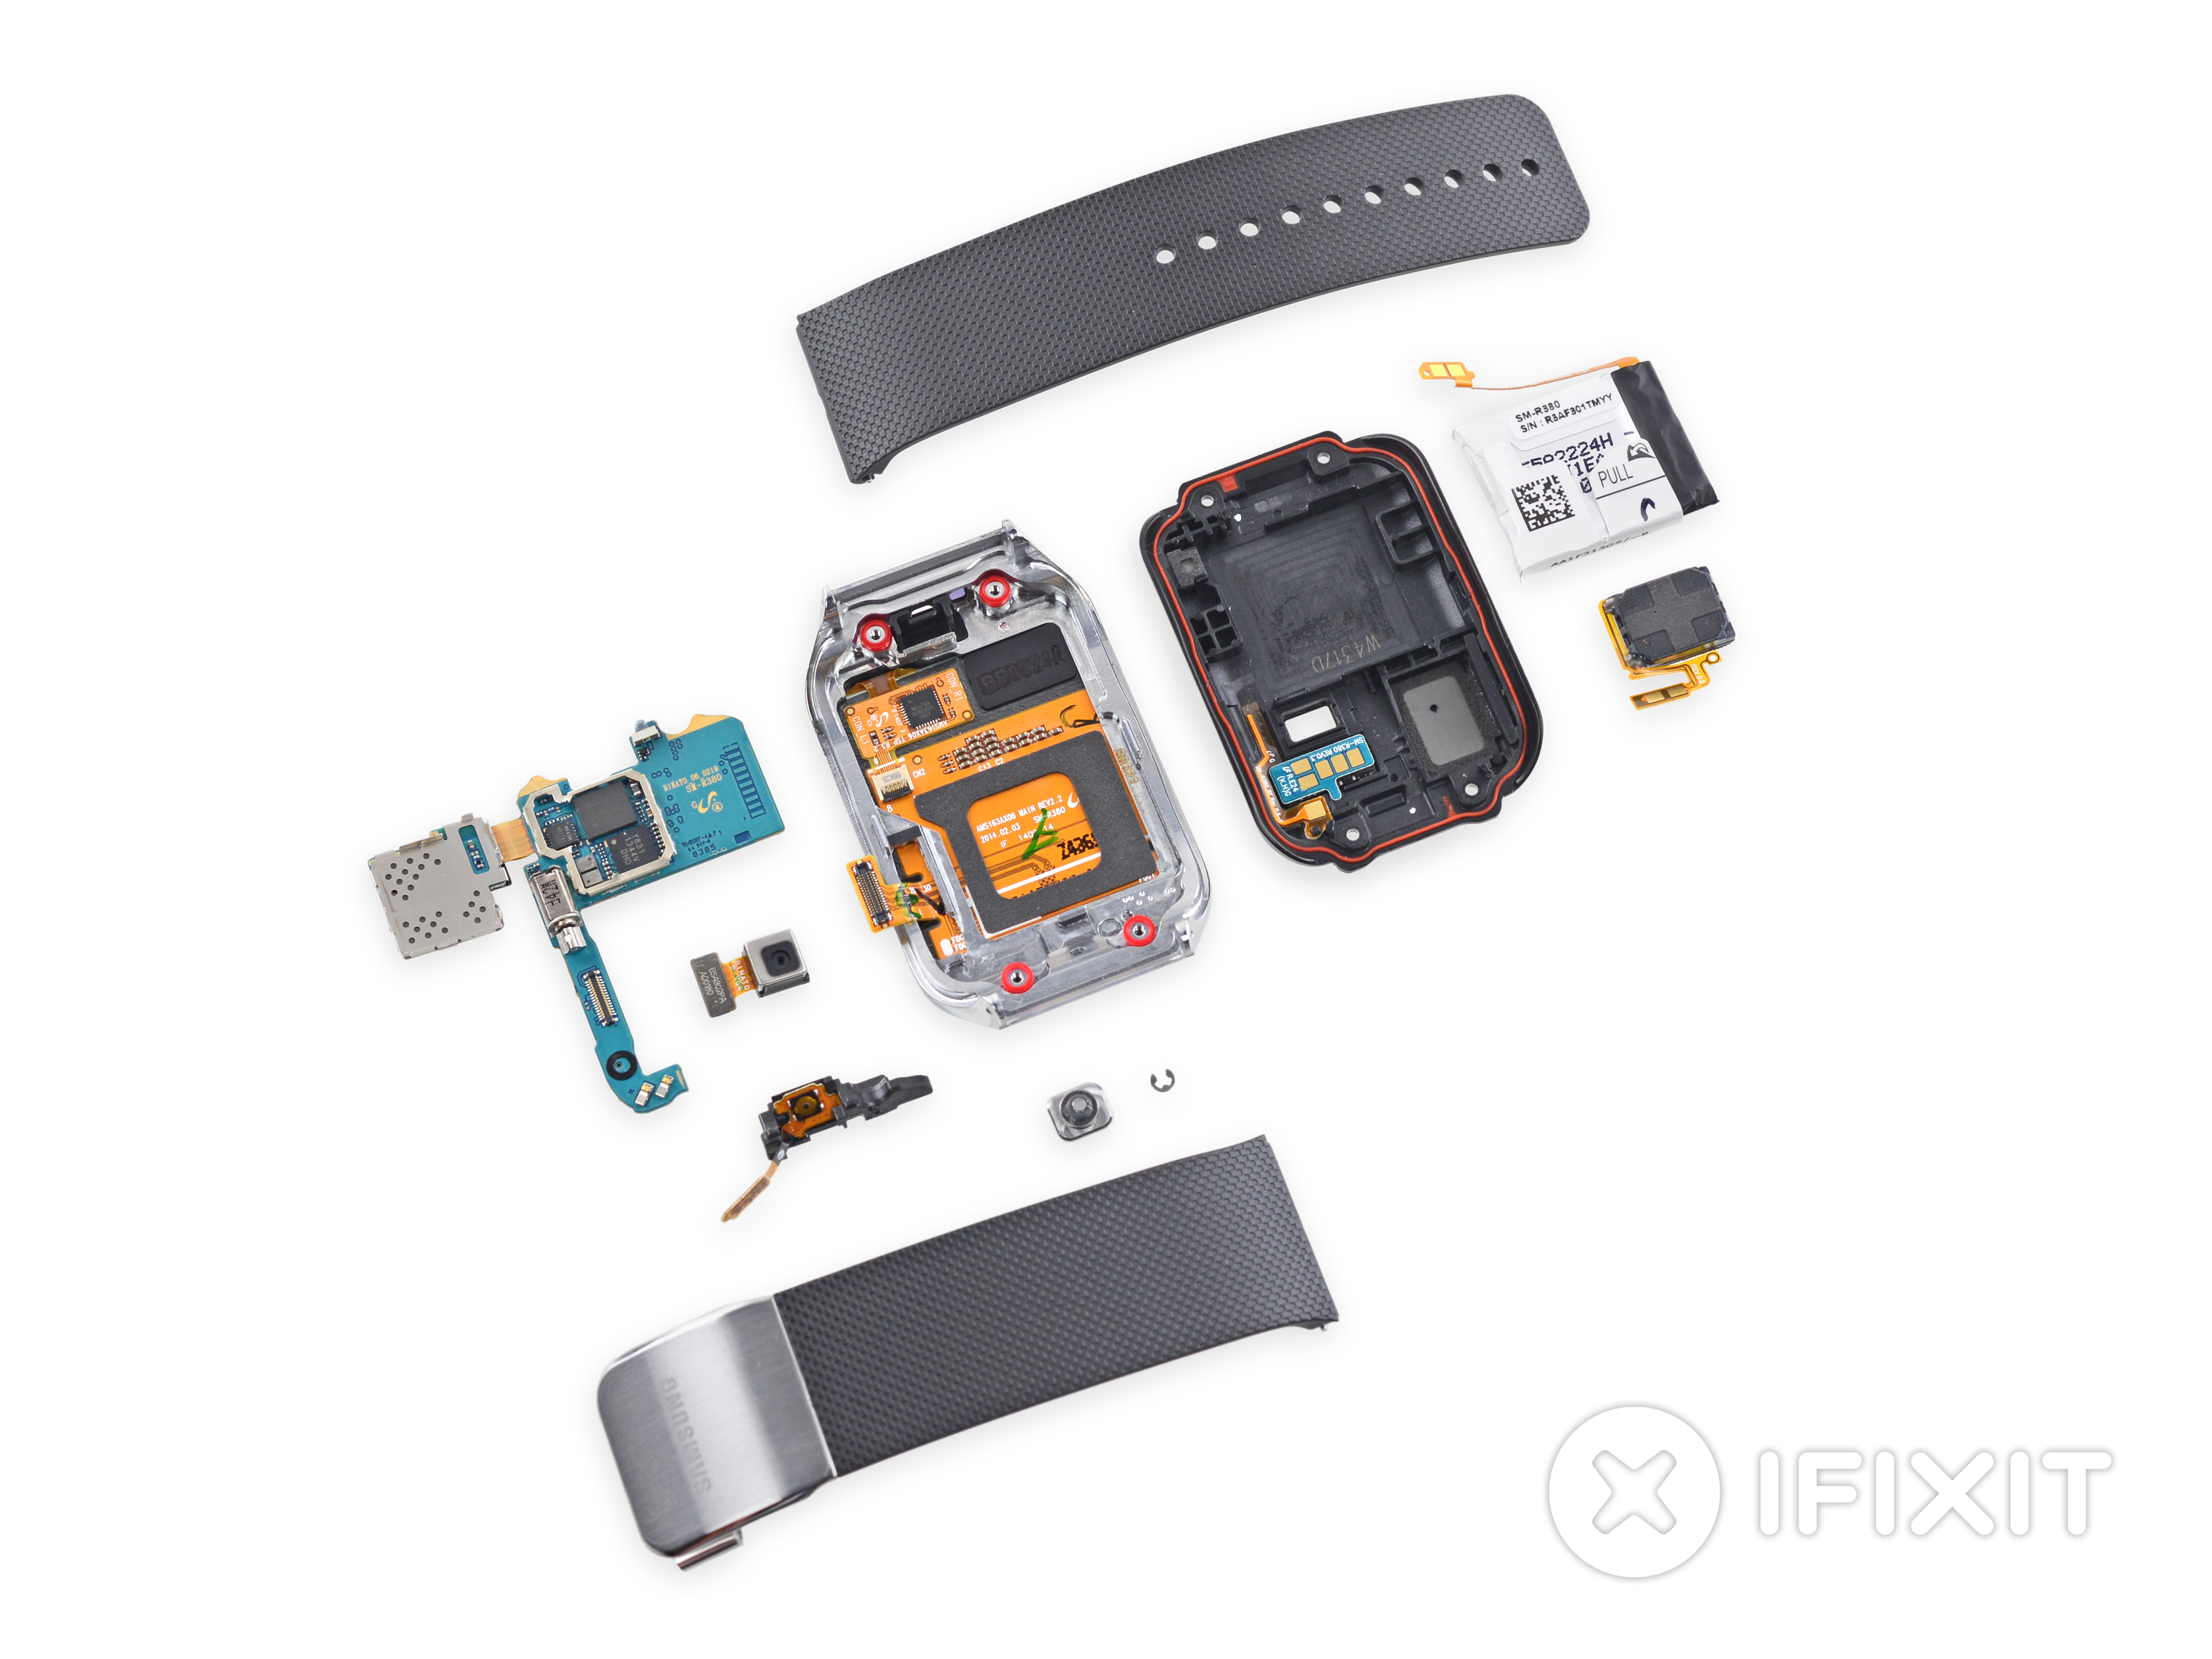 Samsung Gear 2 iFixit teardown shows some potential for repair